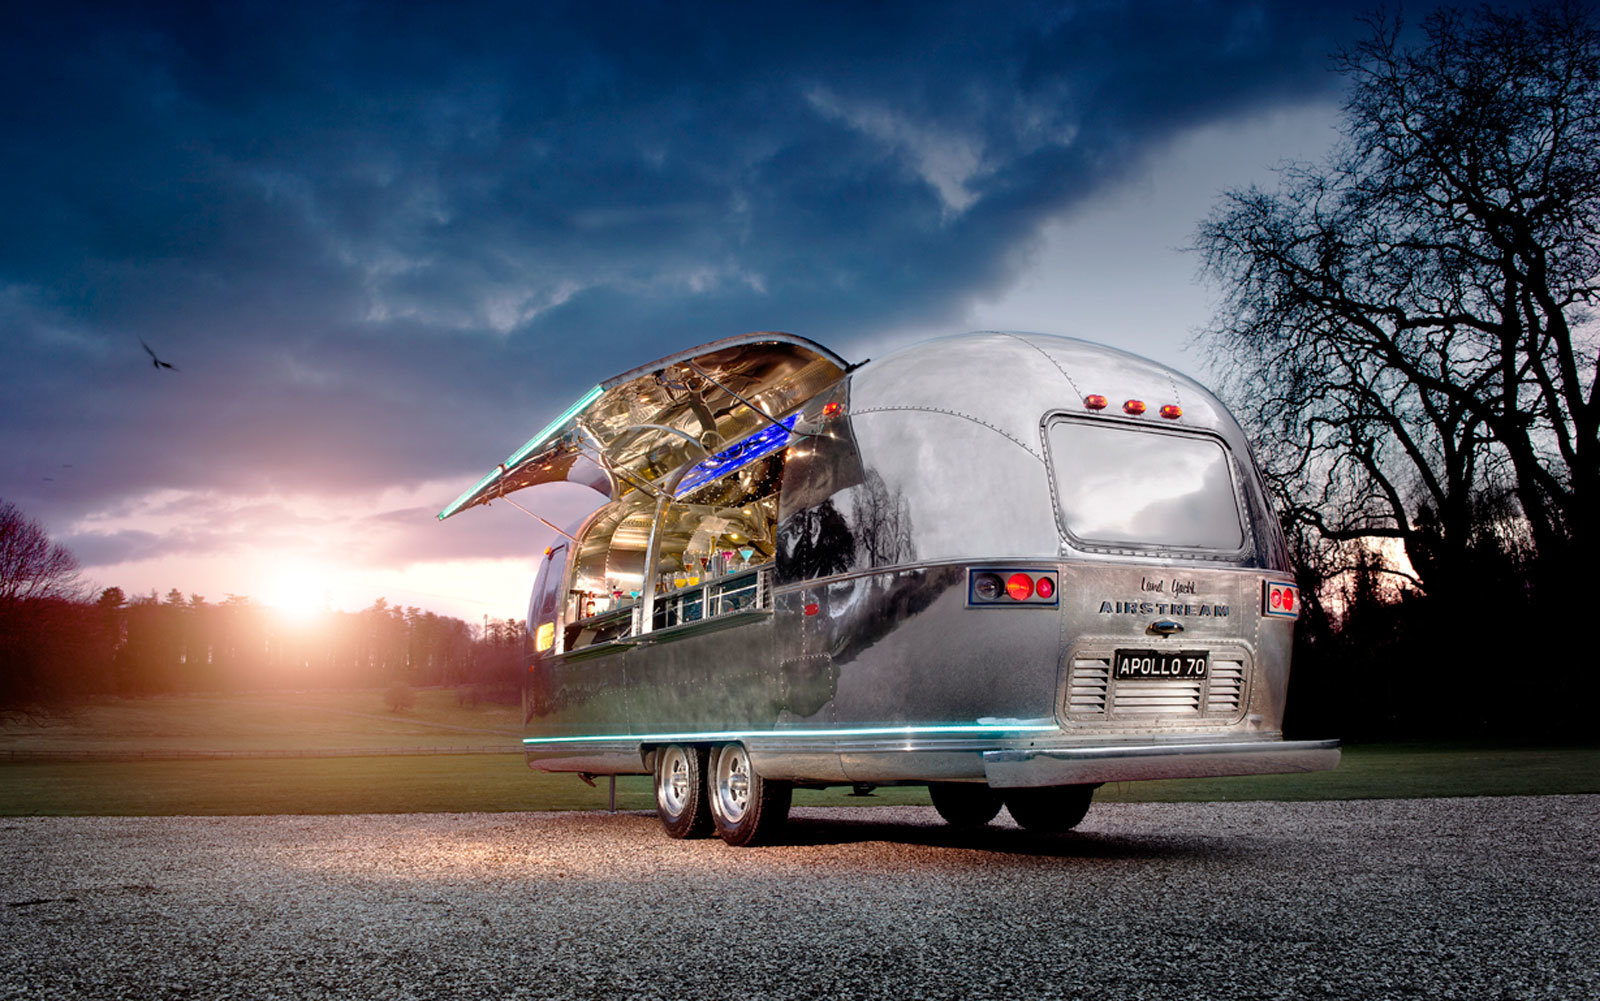 This Mobile Cocktail Bar is Freakin Awesome